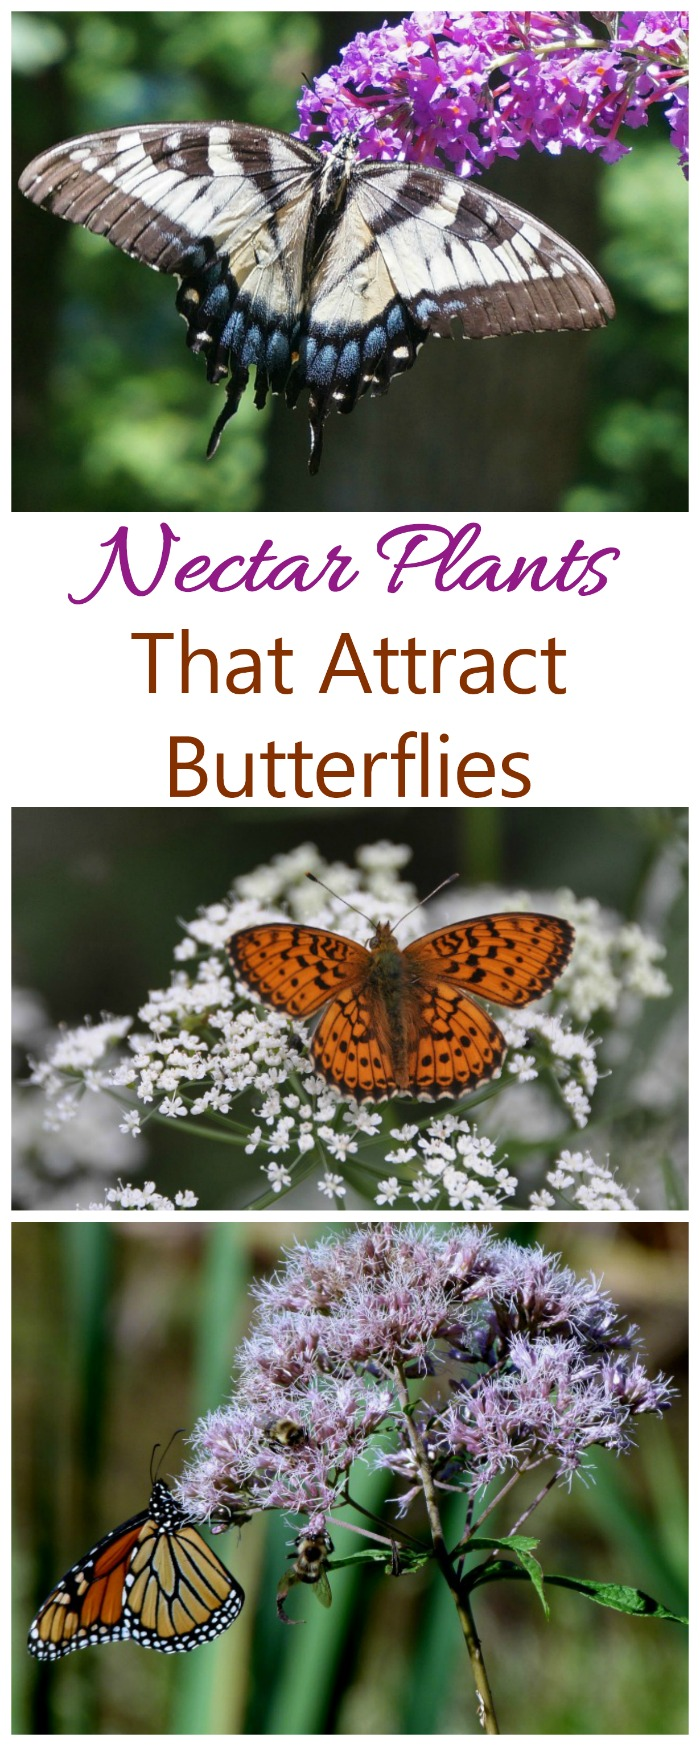 Nectar Plants such as yarrow, butterfly weed and butterfly bush are good for attracting butterflies